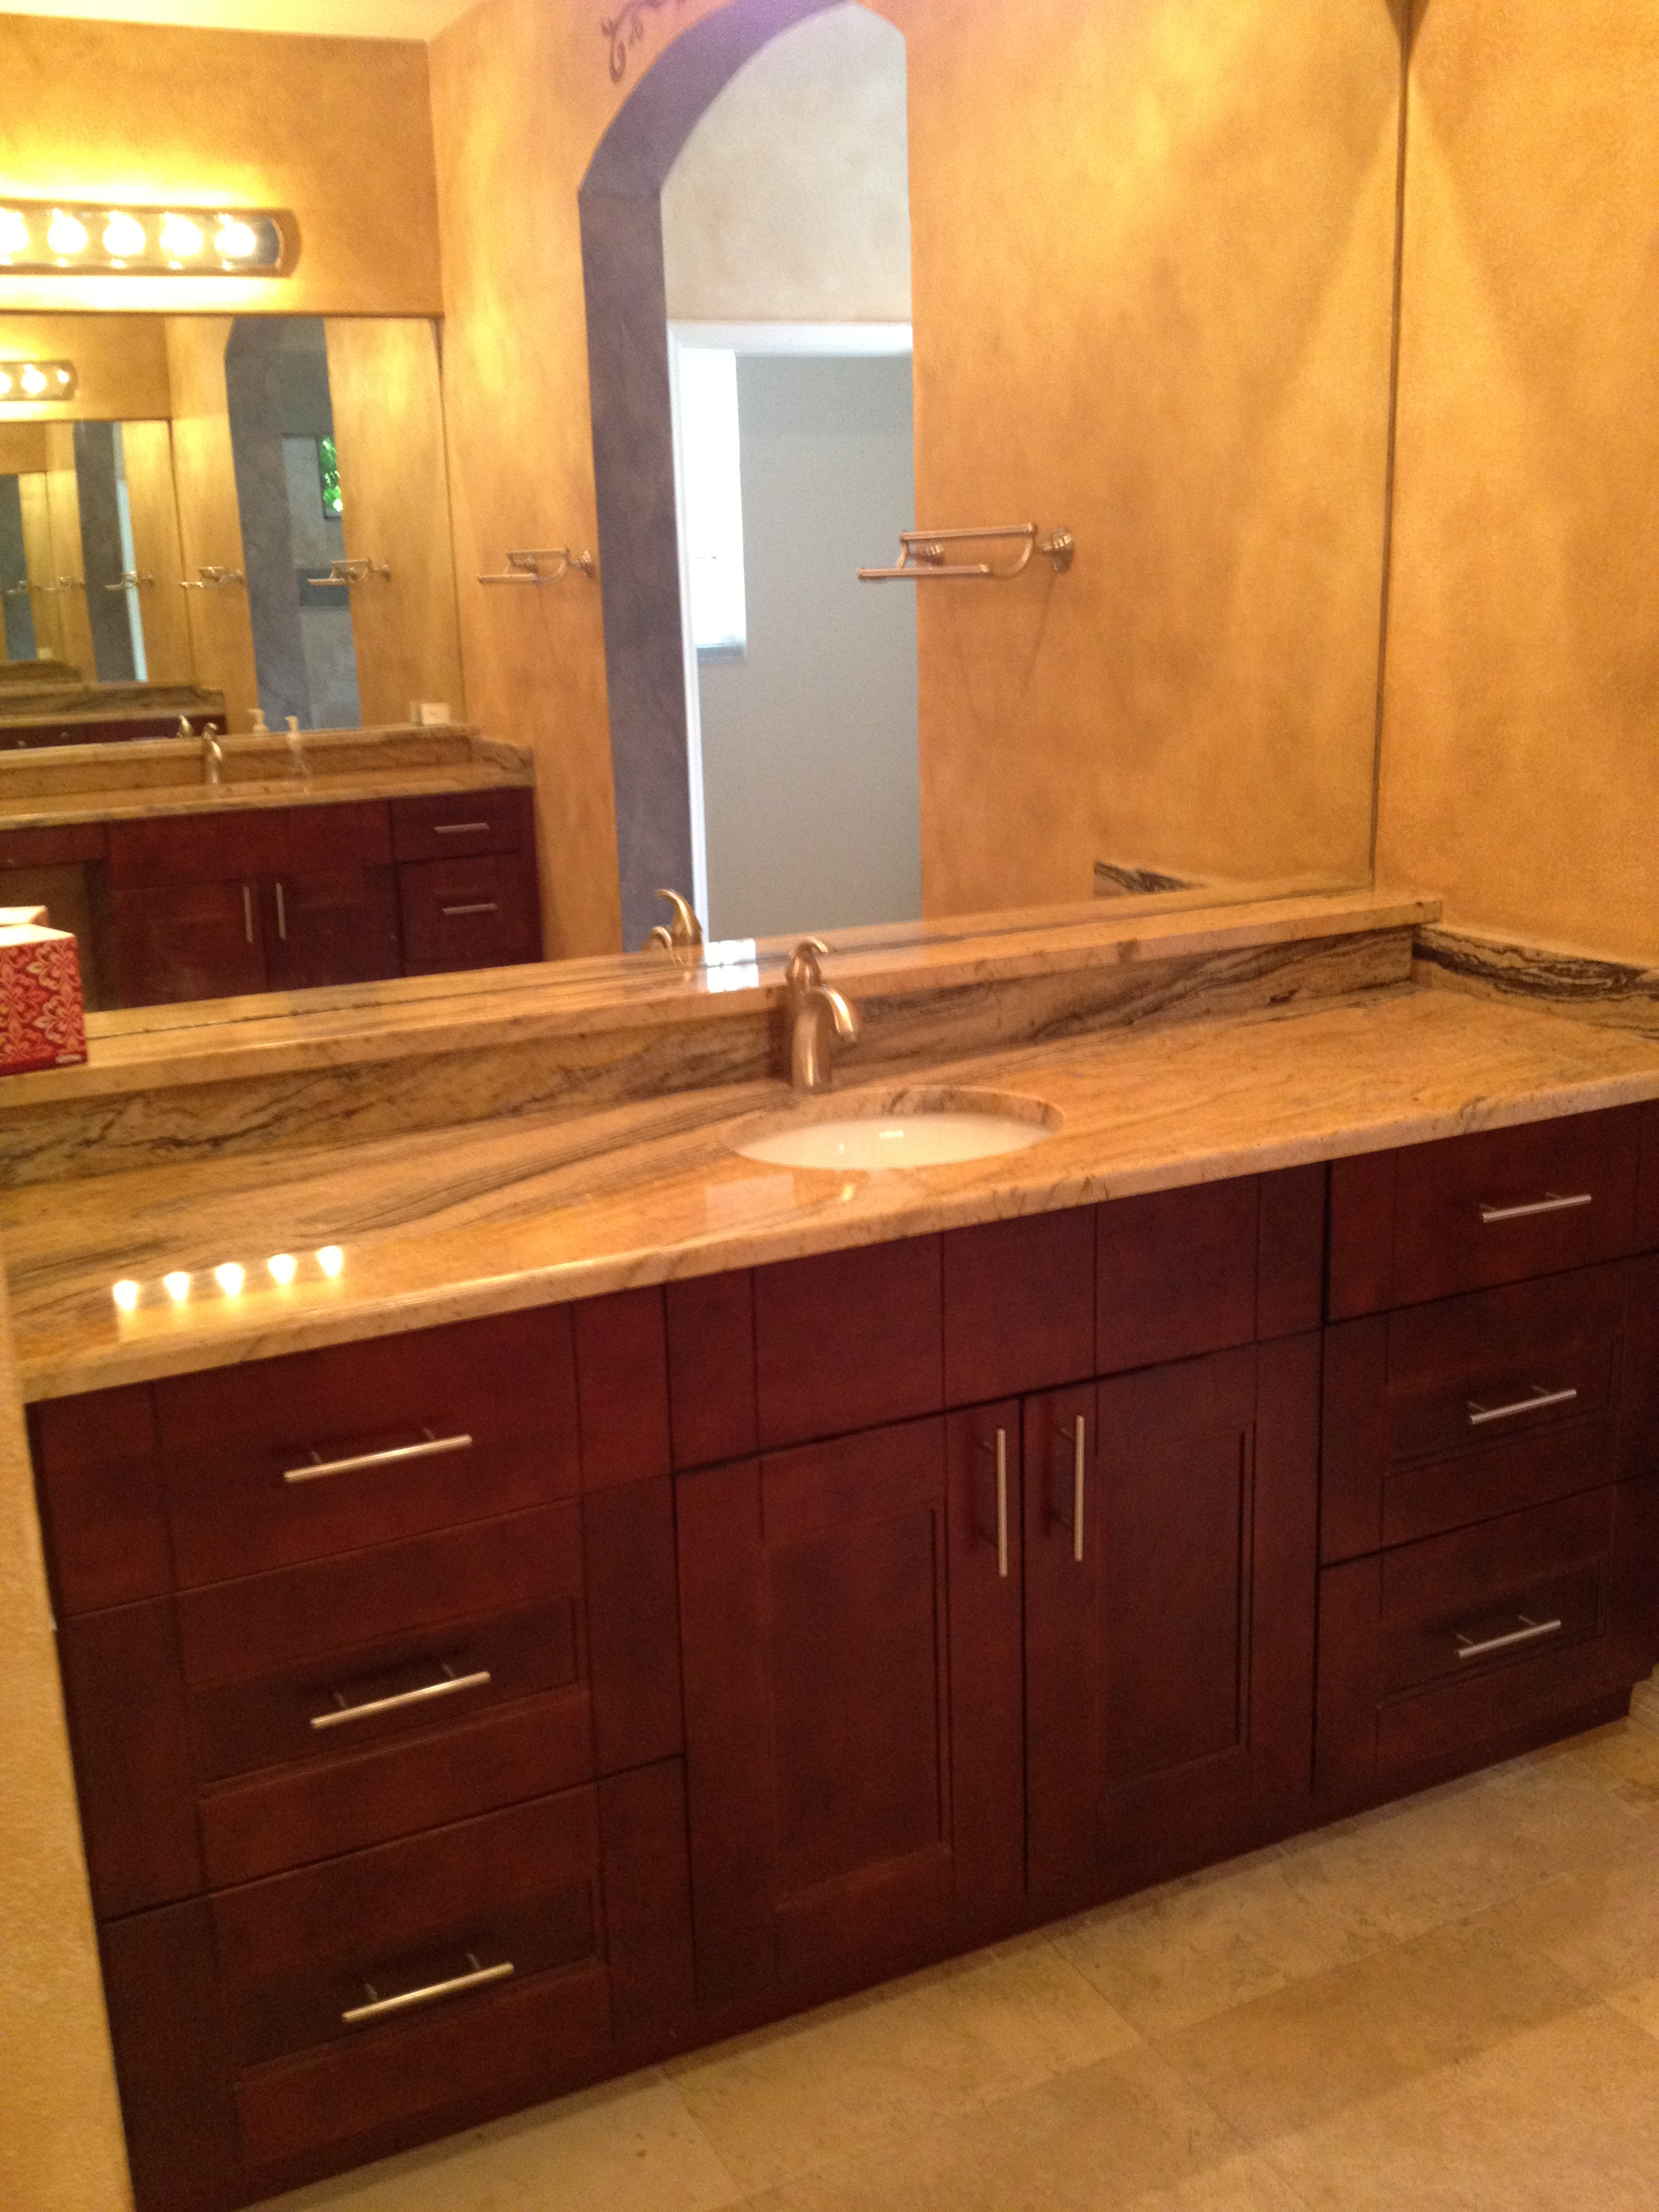 Indus tampa cabinet store for Bathroom vanity warehouse tampa